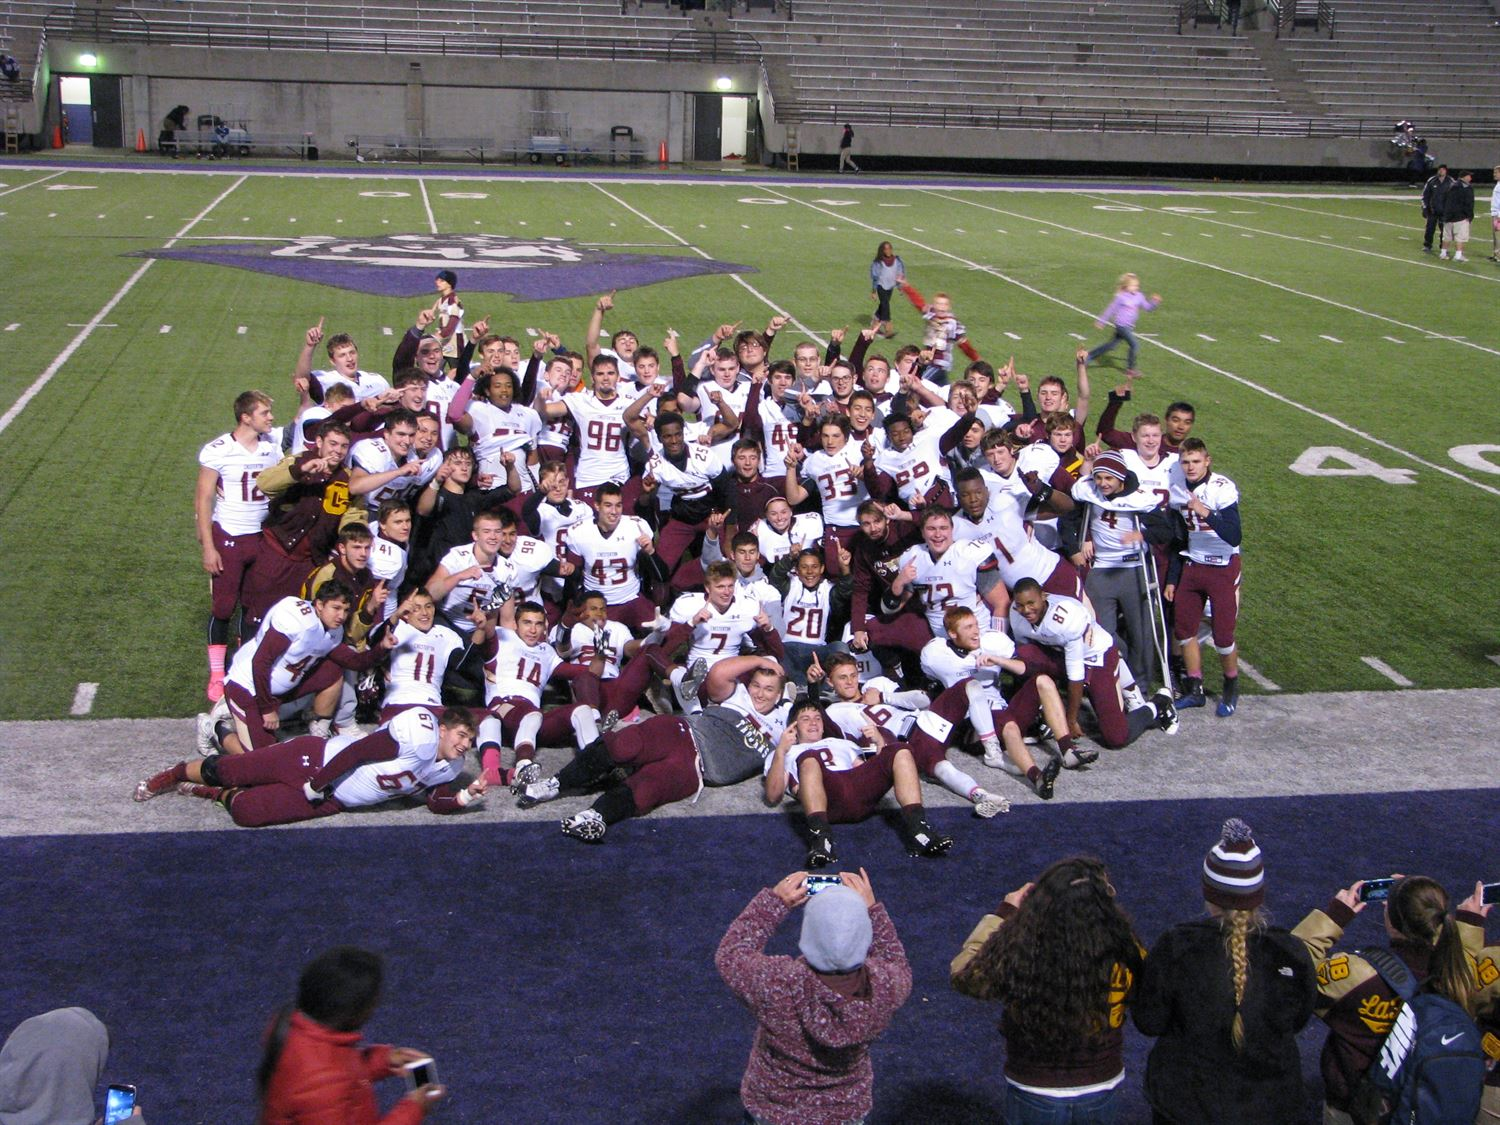 Chesterton High School - Chesterton Trojans Varsity Football